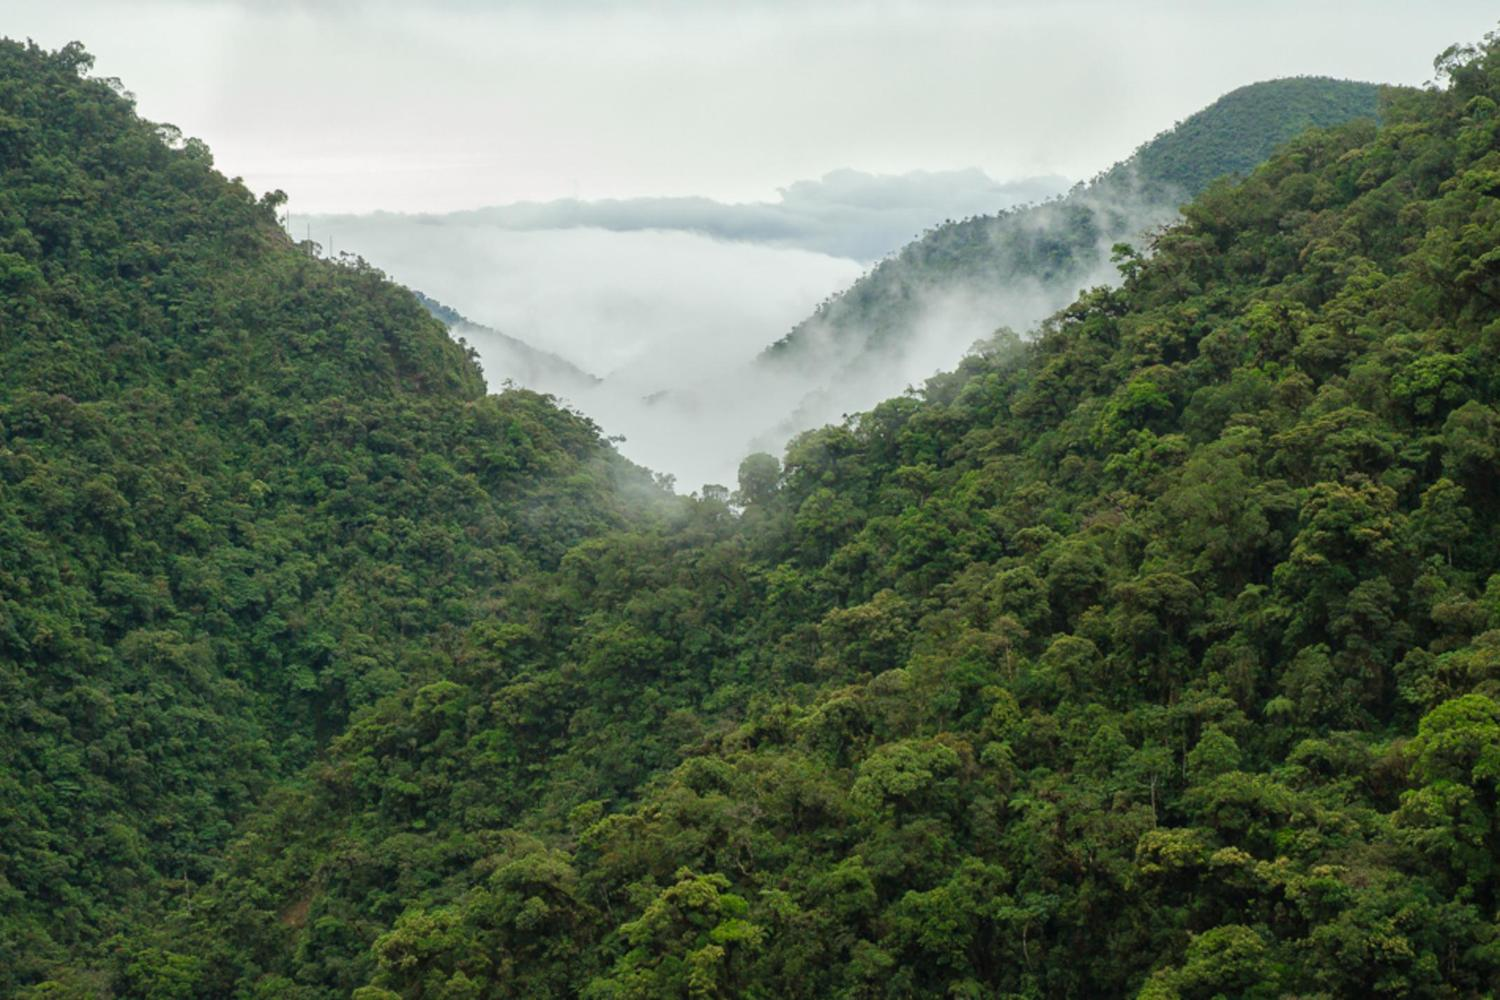 Dramatic views of the cloudforest in Manu biosphere reserve